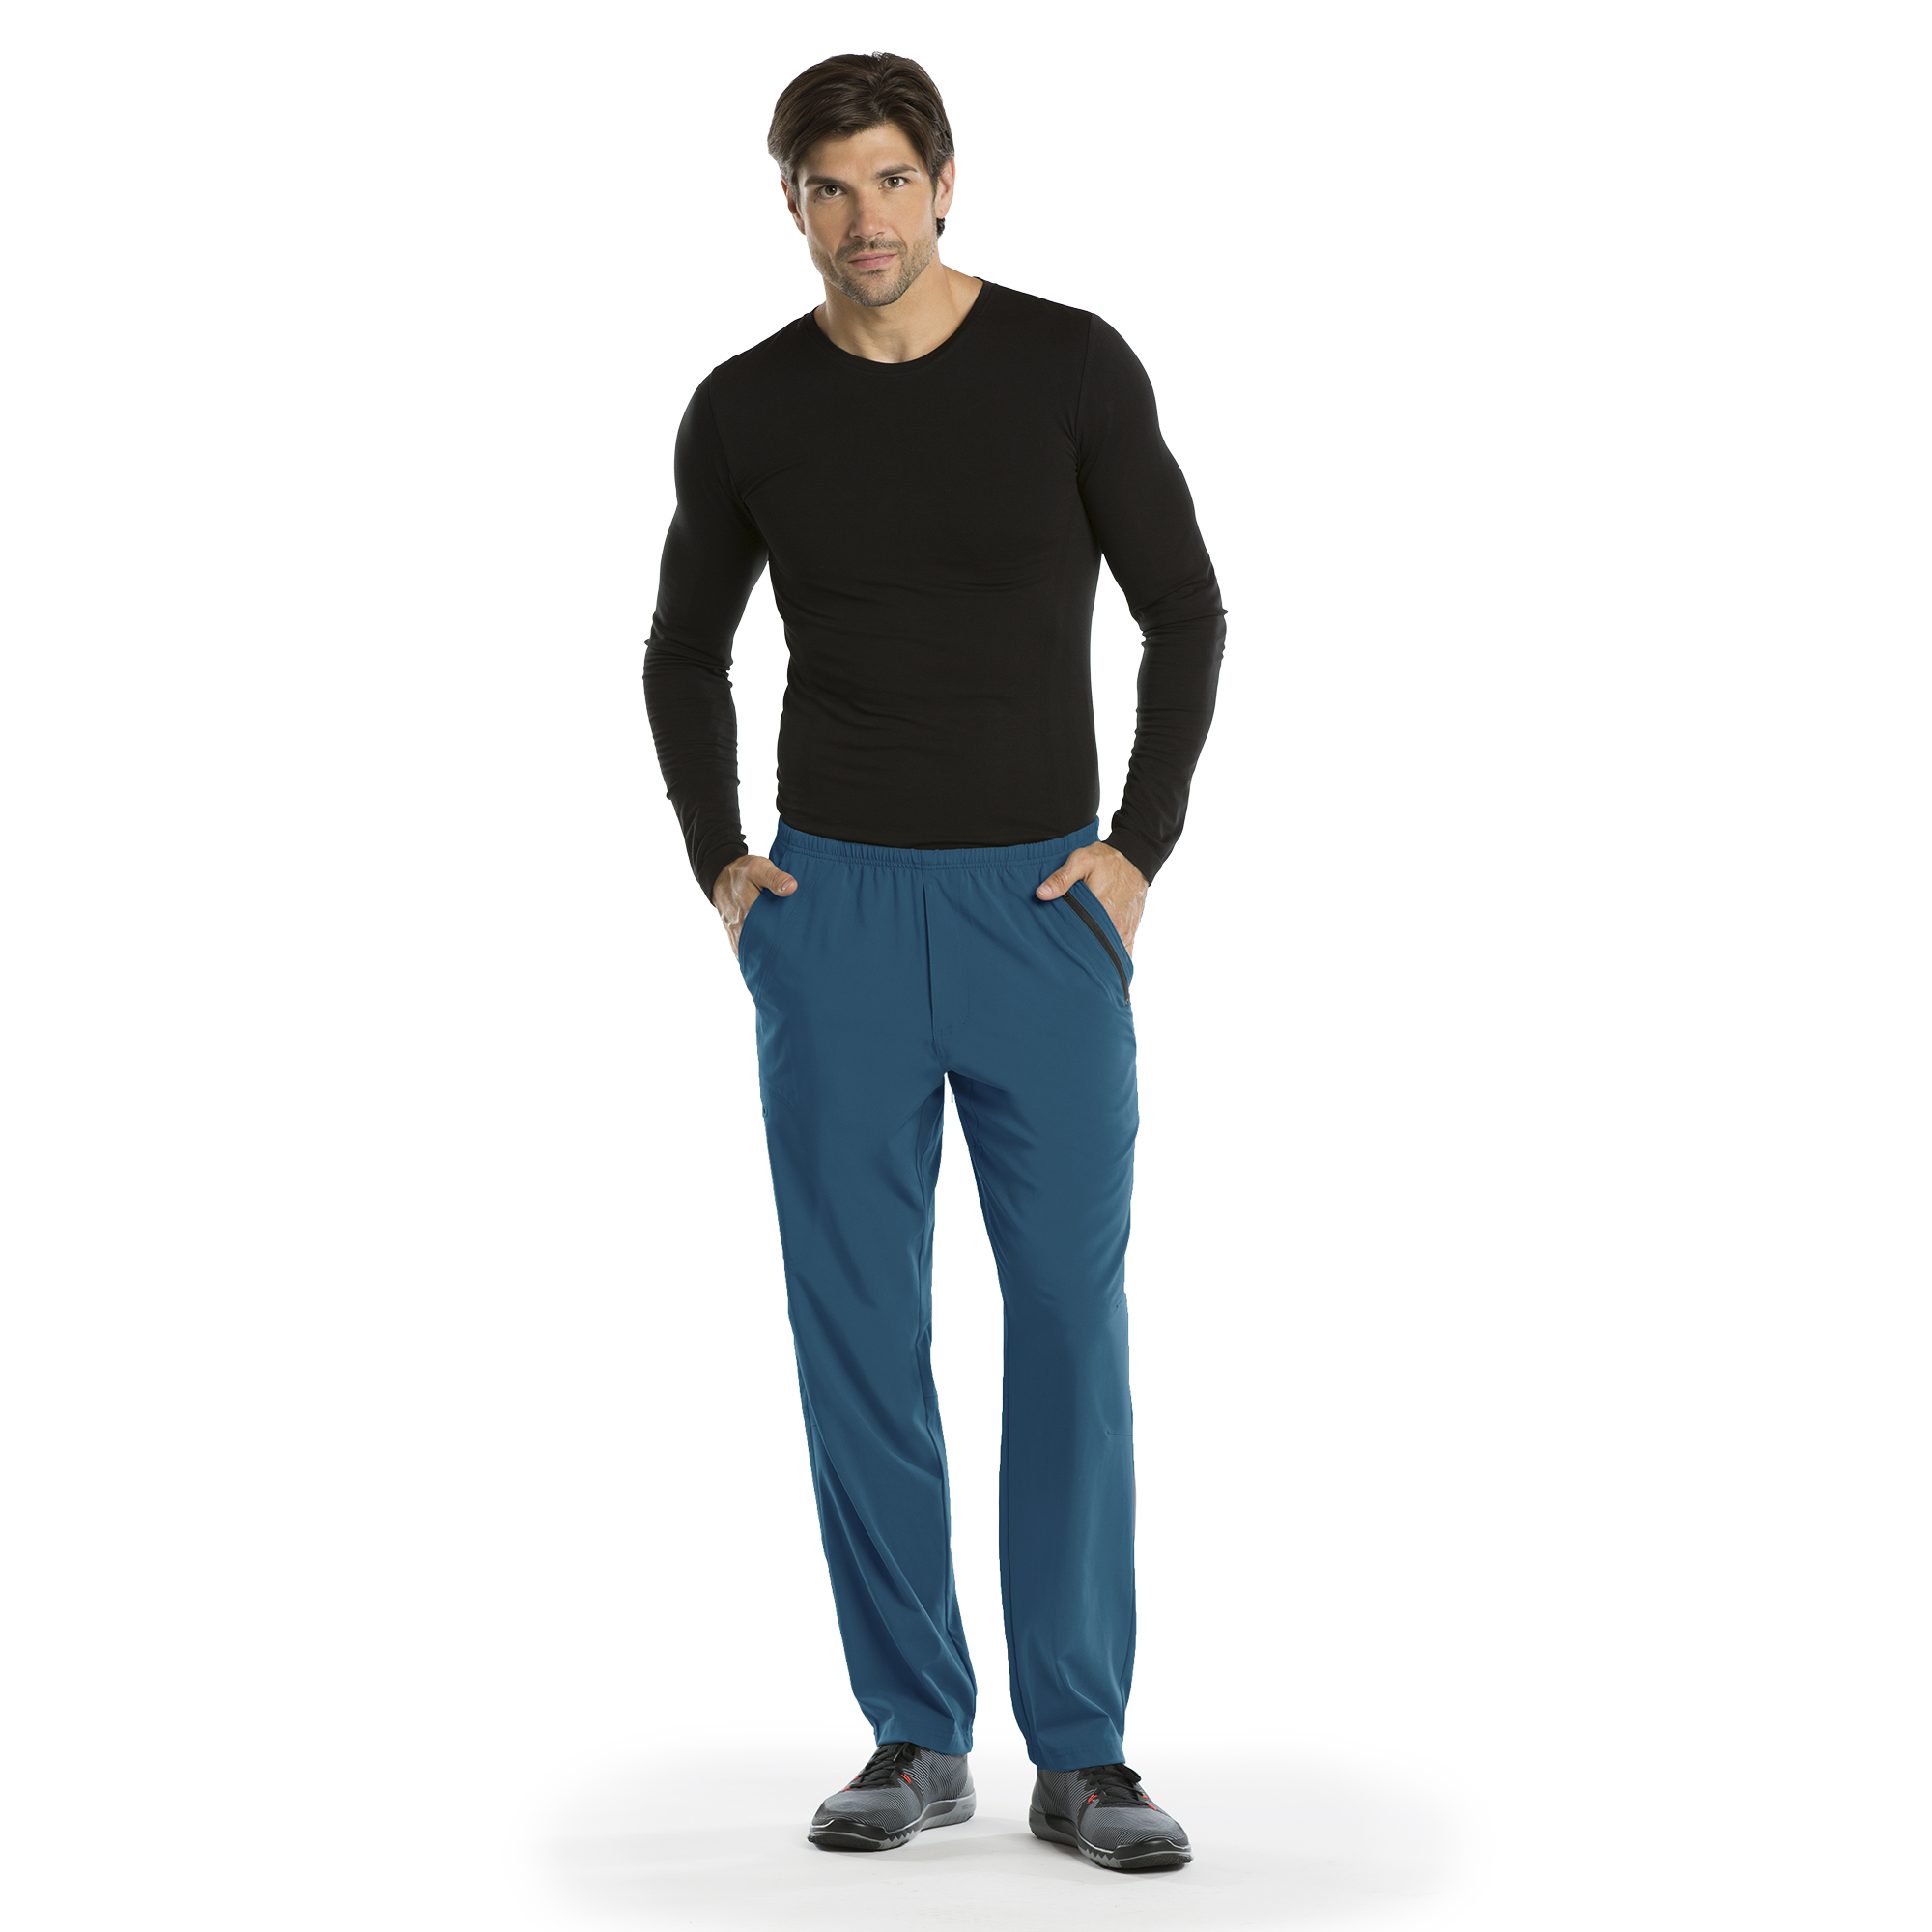 Barco One Men's 7 Pocket Elastic Cargo Pant-Barco One